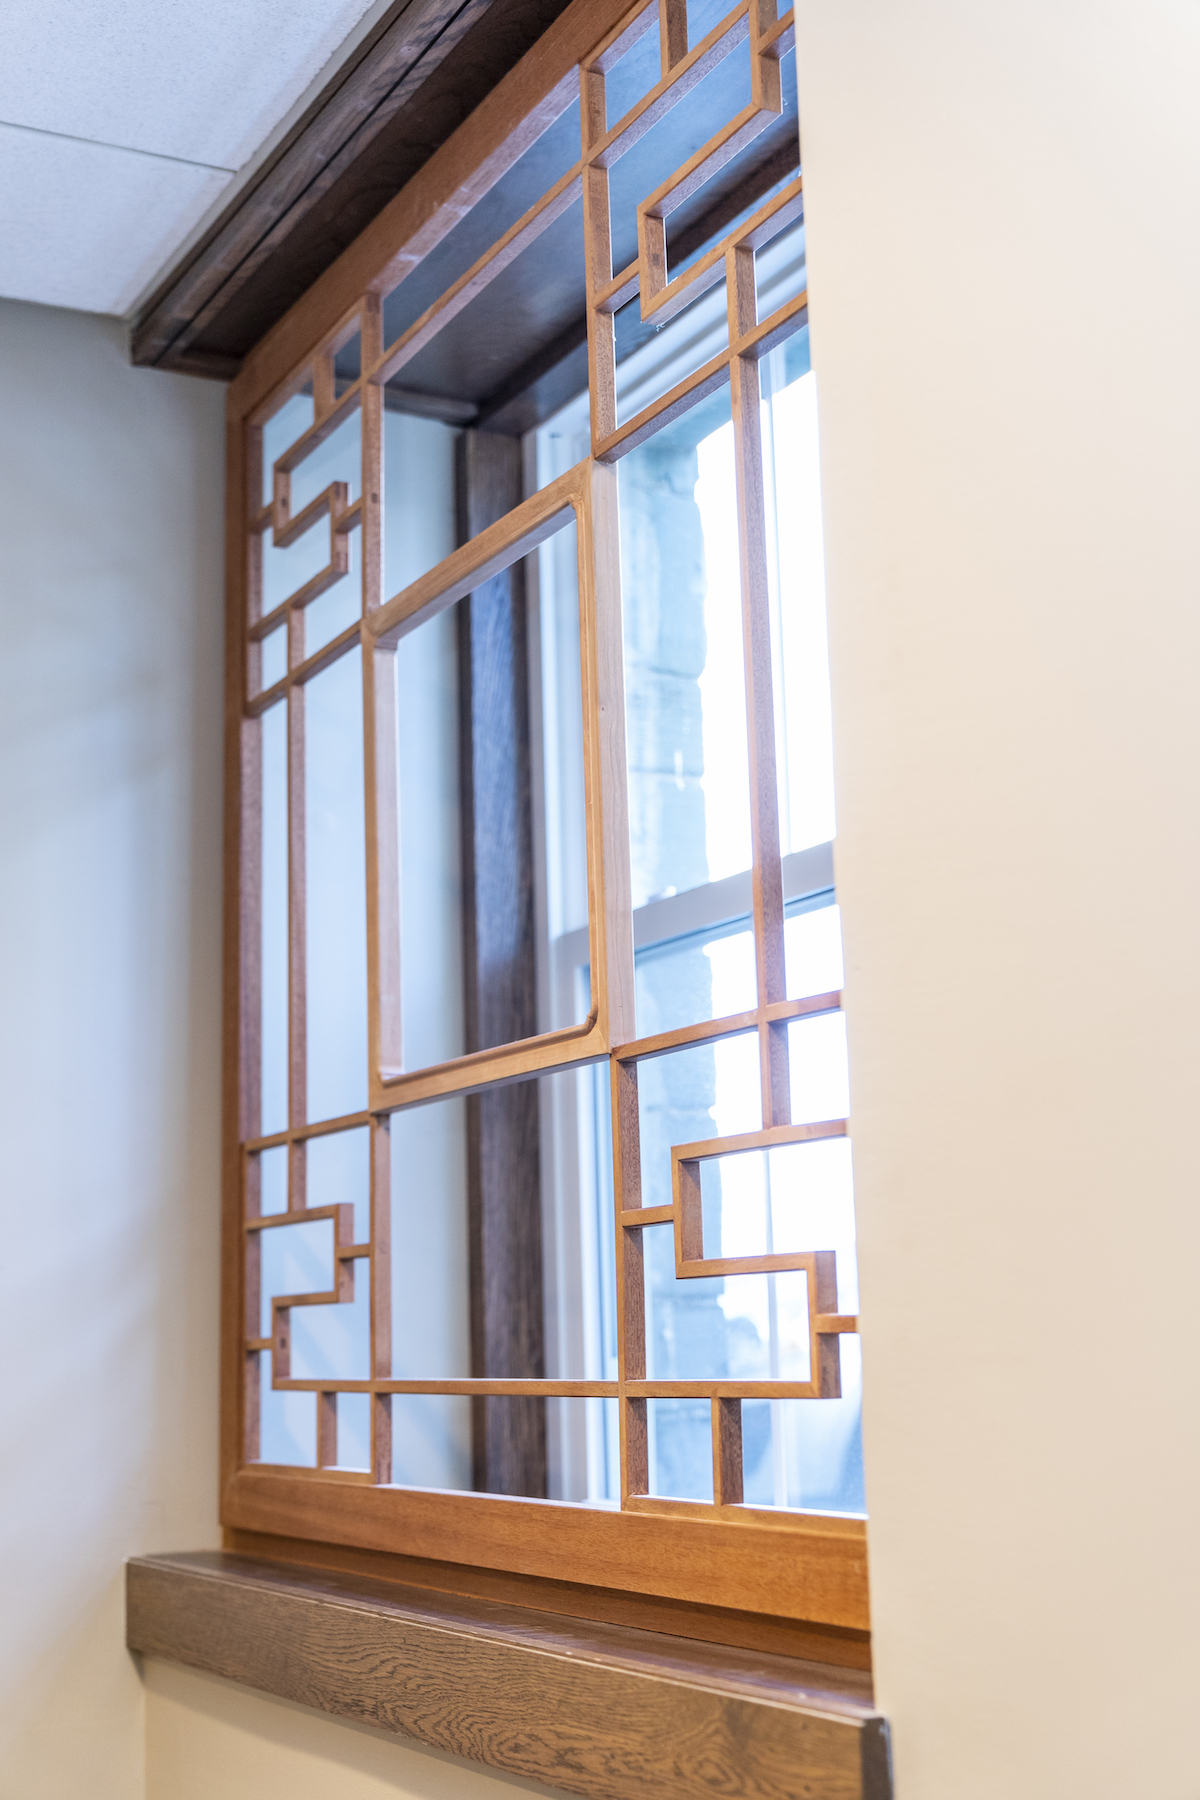 Mahogany outer frame and lattice, with American Black Cherry inner window frame.